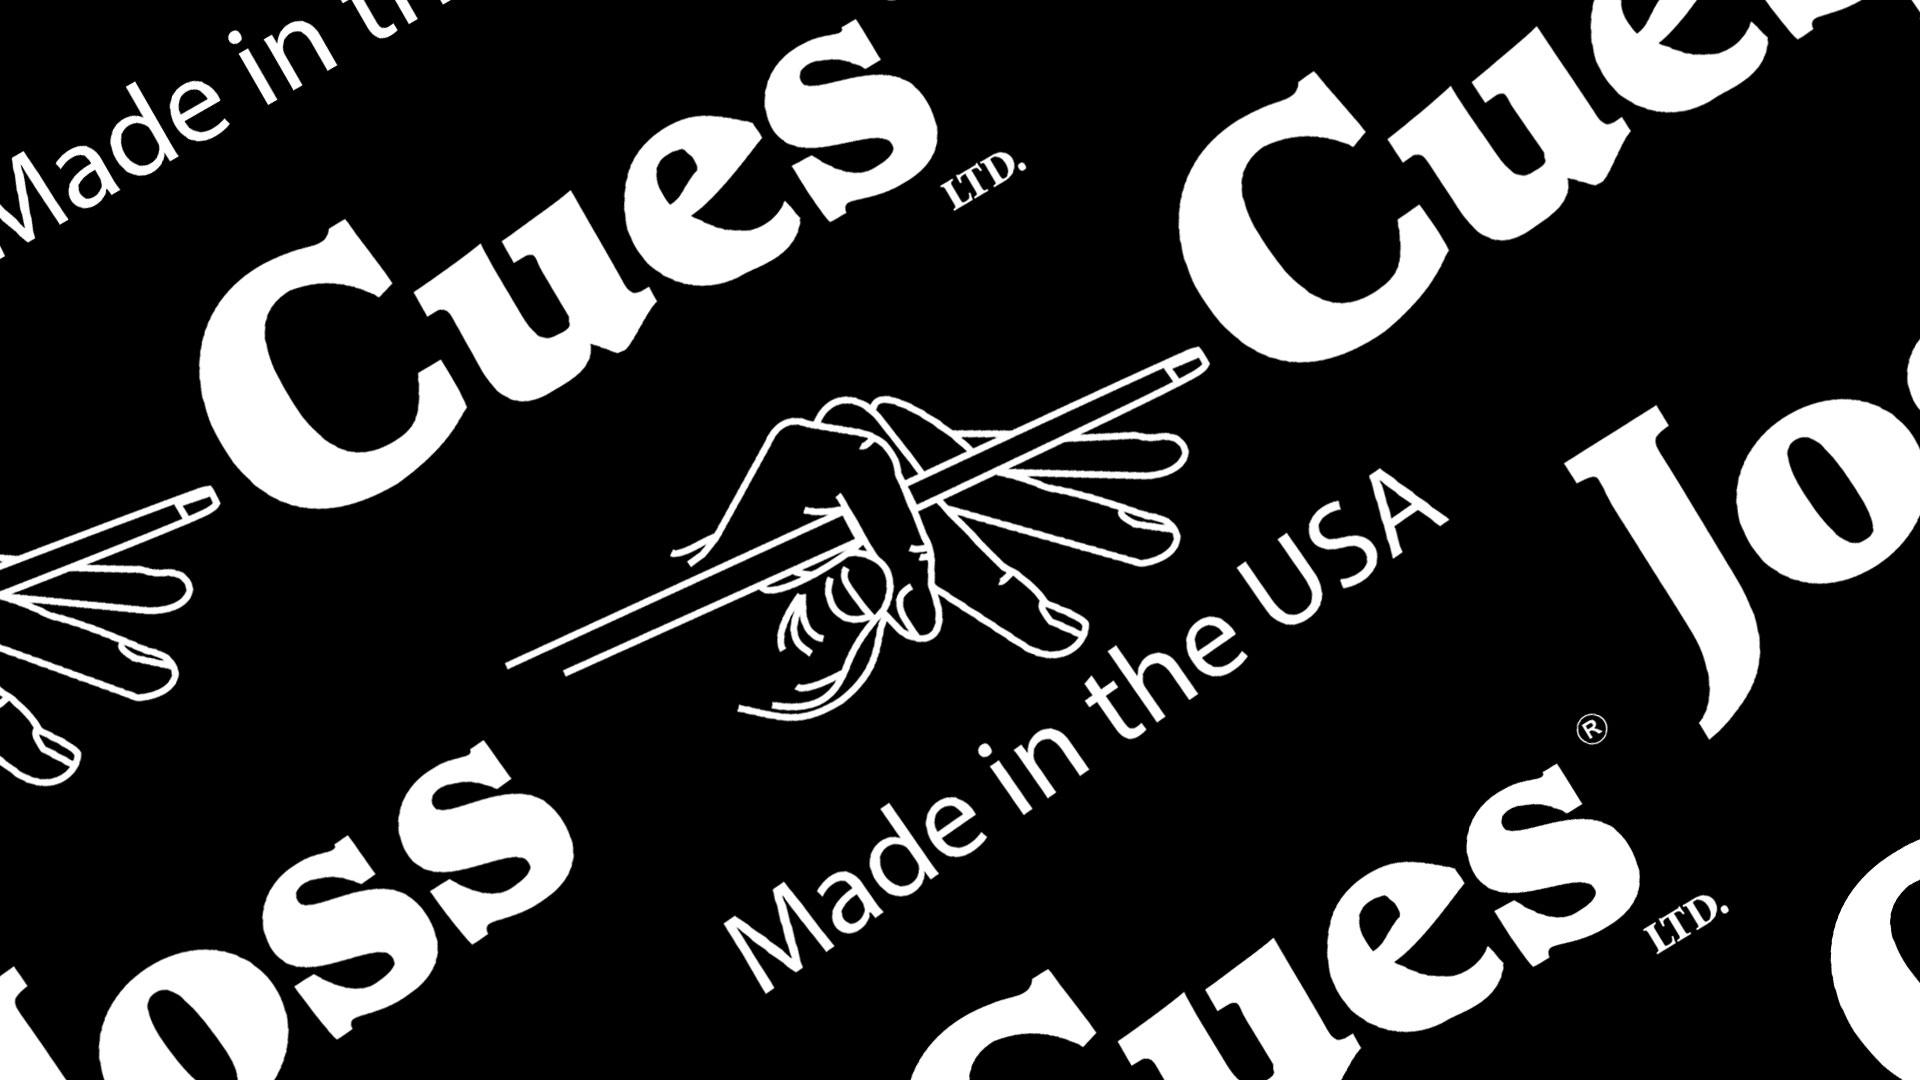 image Joss cues made in the USA